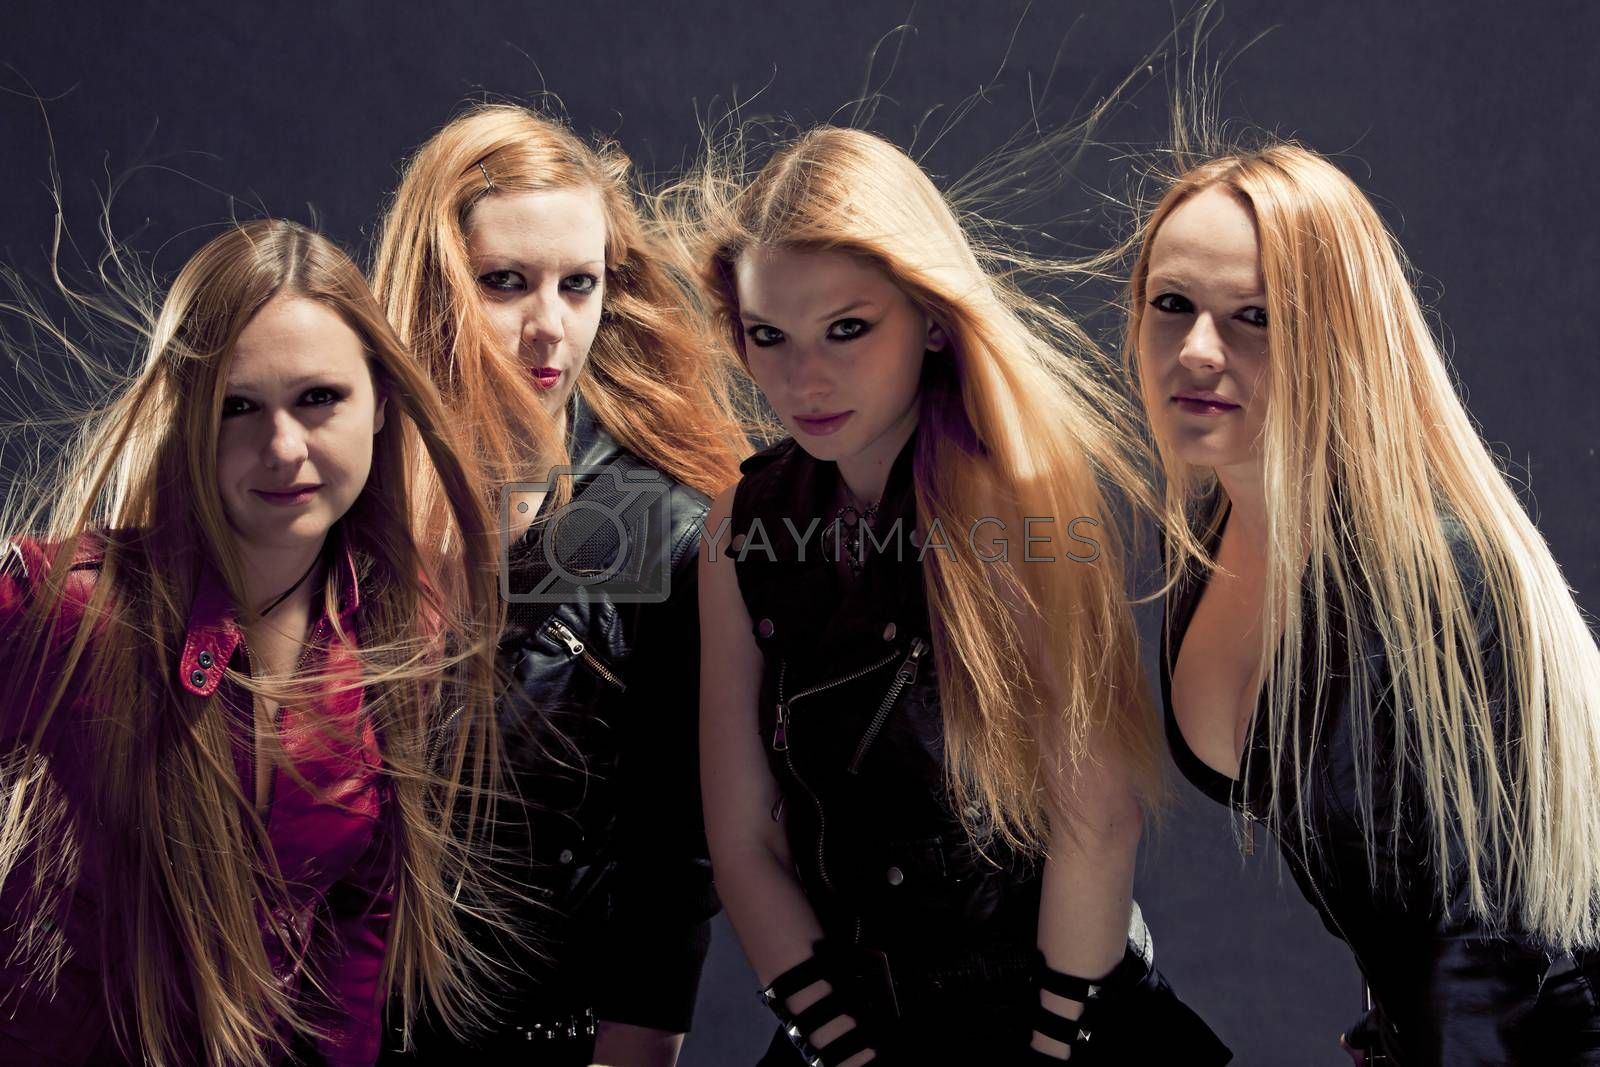 Women in leather / rock and roll band